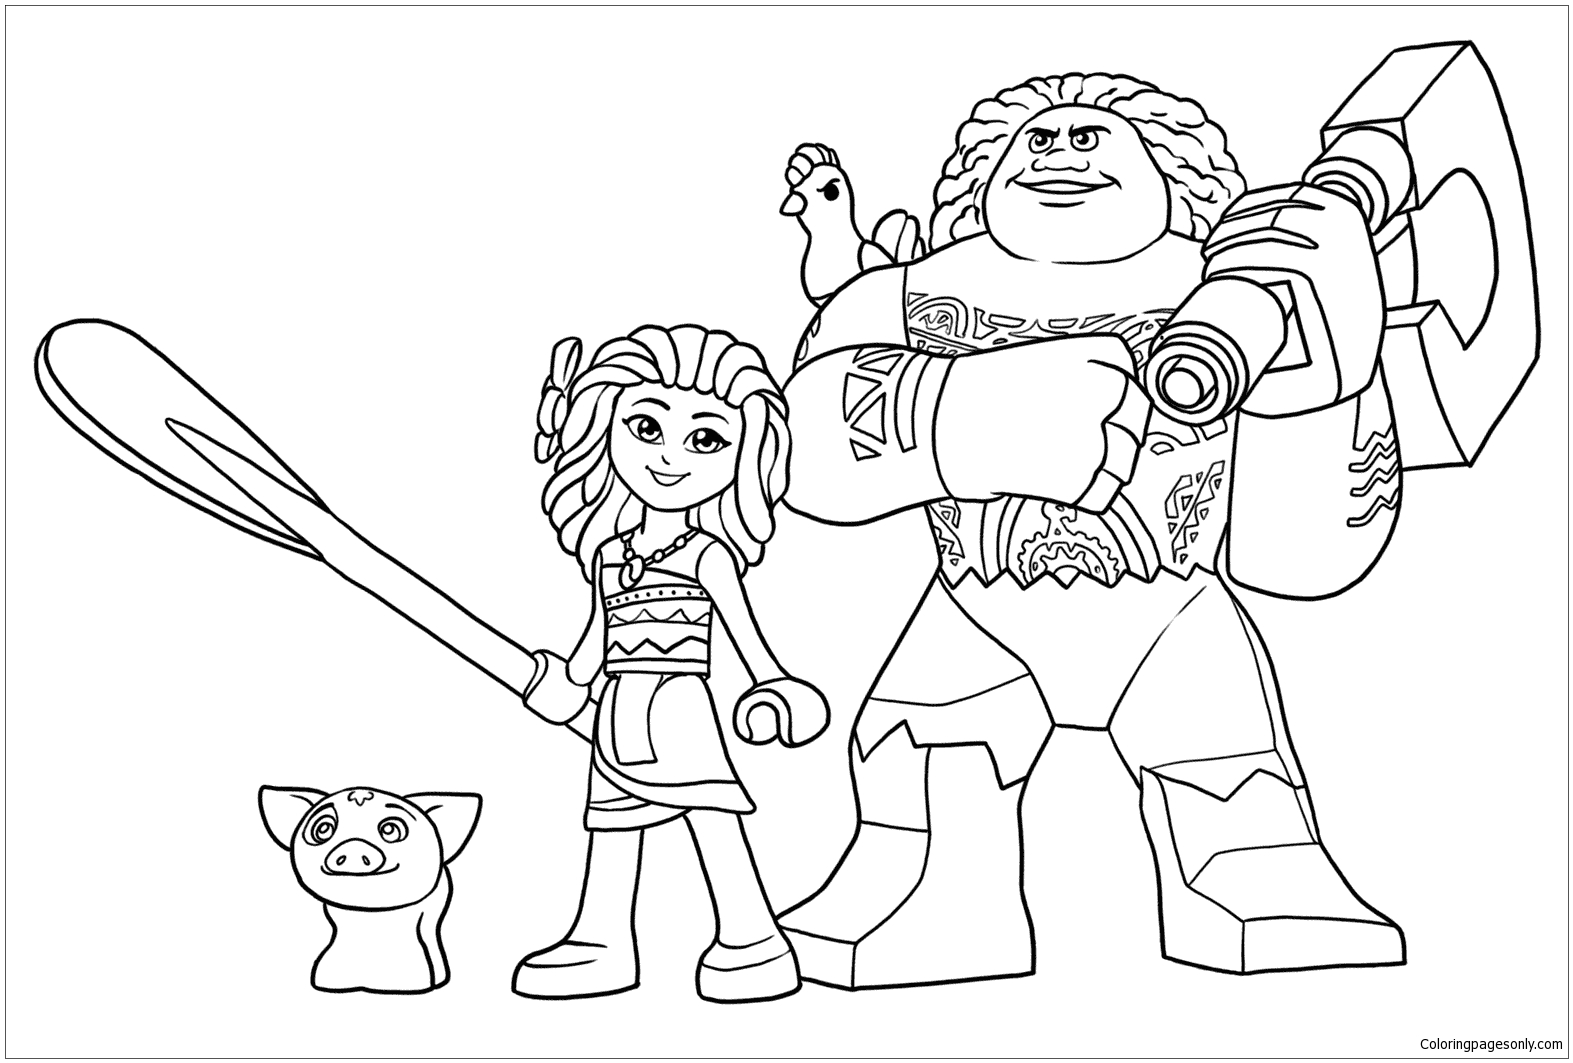 Lego Maui And Moana Coloring Page Free Coloring Pages Online